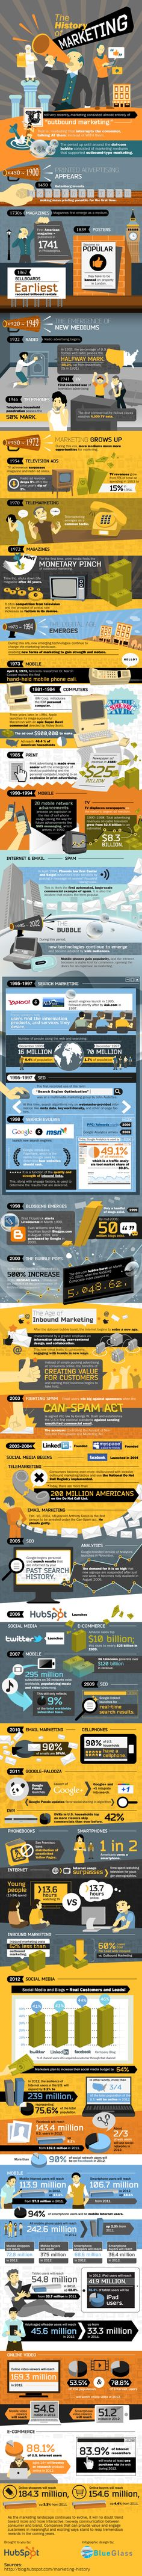 La Historia del Marketing #Infografia en inglés The History of Marketing: An Exhaustive Timeline [INFOGRAPHIC] @HubSpot